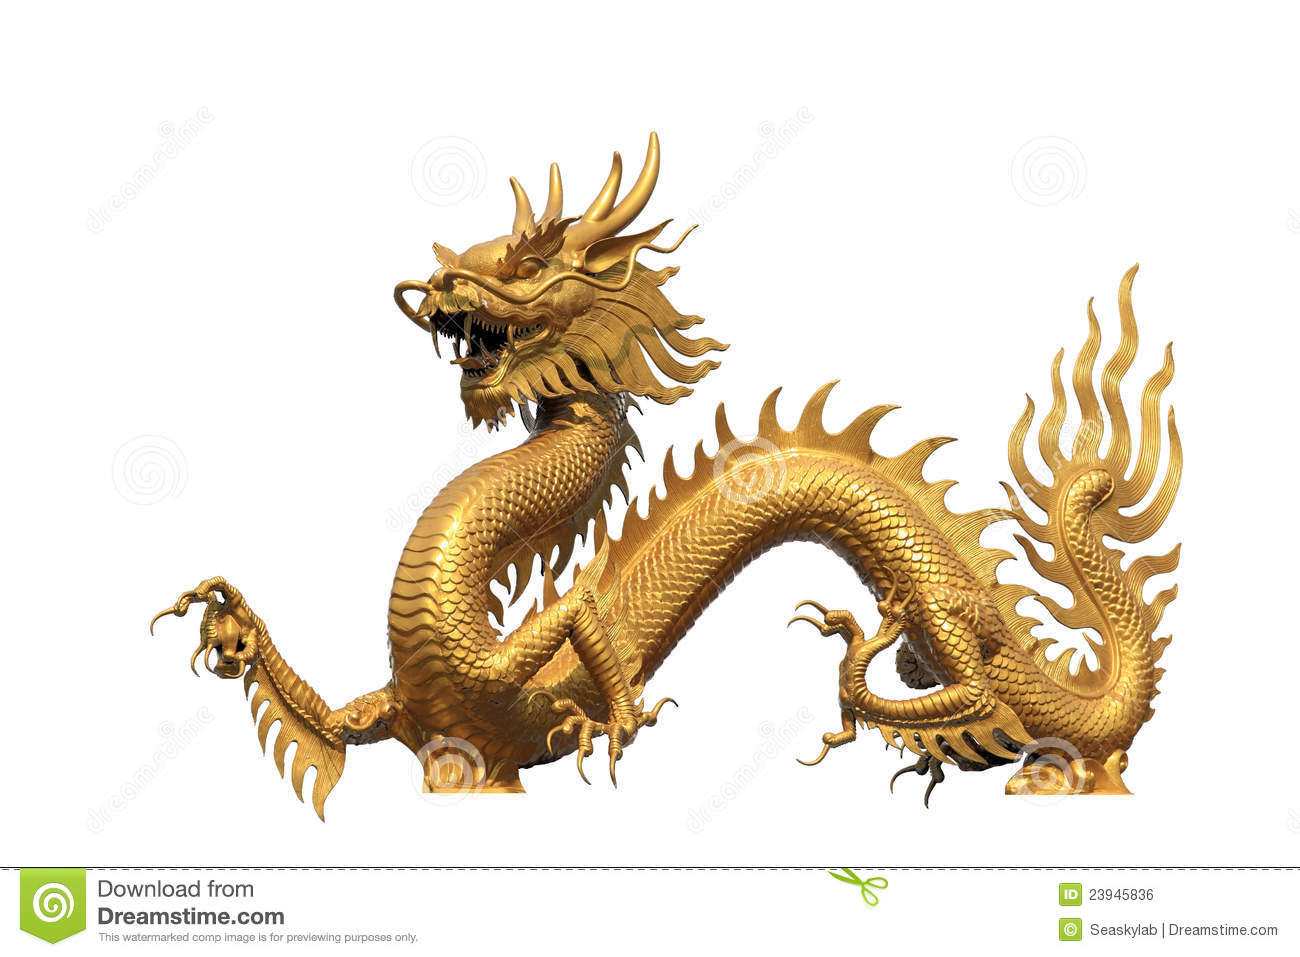 Golden Dragon Statue Royalty Free Stock Image - Image: 23945836